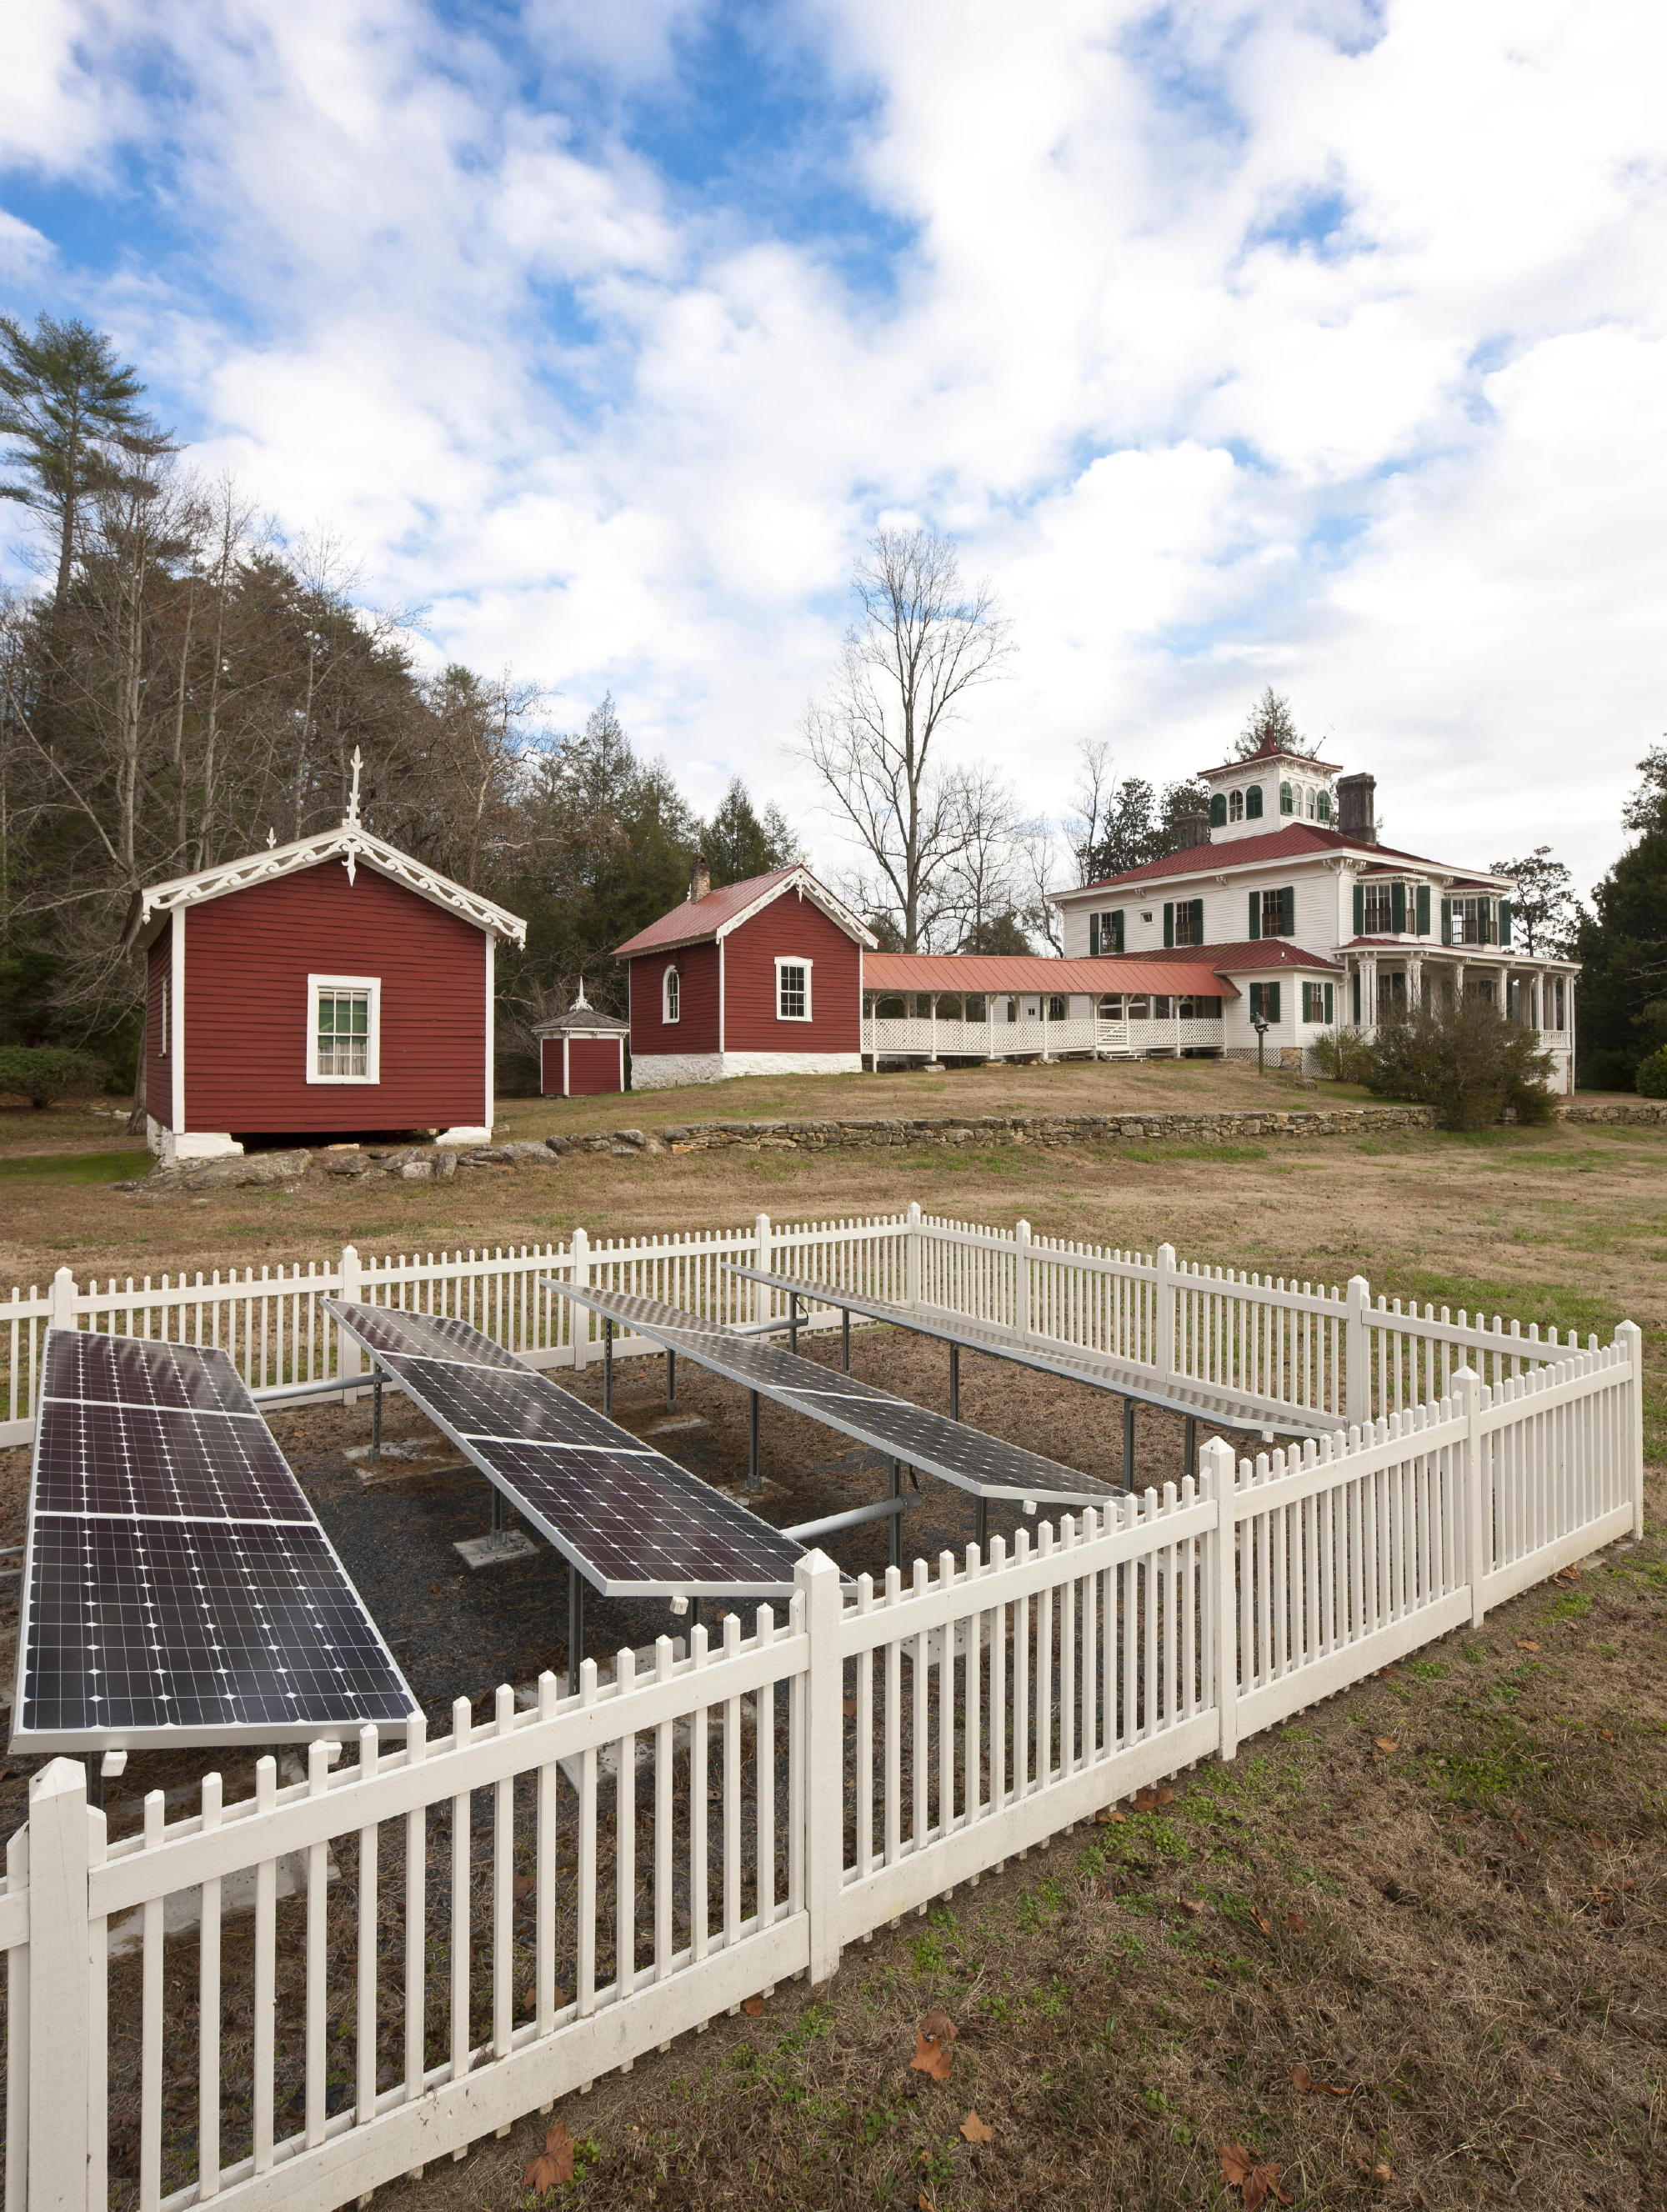 In keeping with the history of early adoption of technologies like indoor plumbing and electricity by the first owners, the design-build team selected an unobtrusive but sunny area near the farmhouse for the installation of 22 solar panels surrounded by a picket fence. Photo: c Jonathan Hillyer / Atlanta